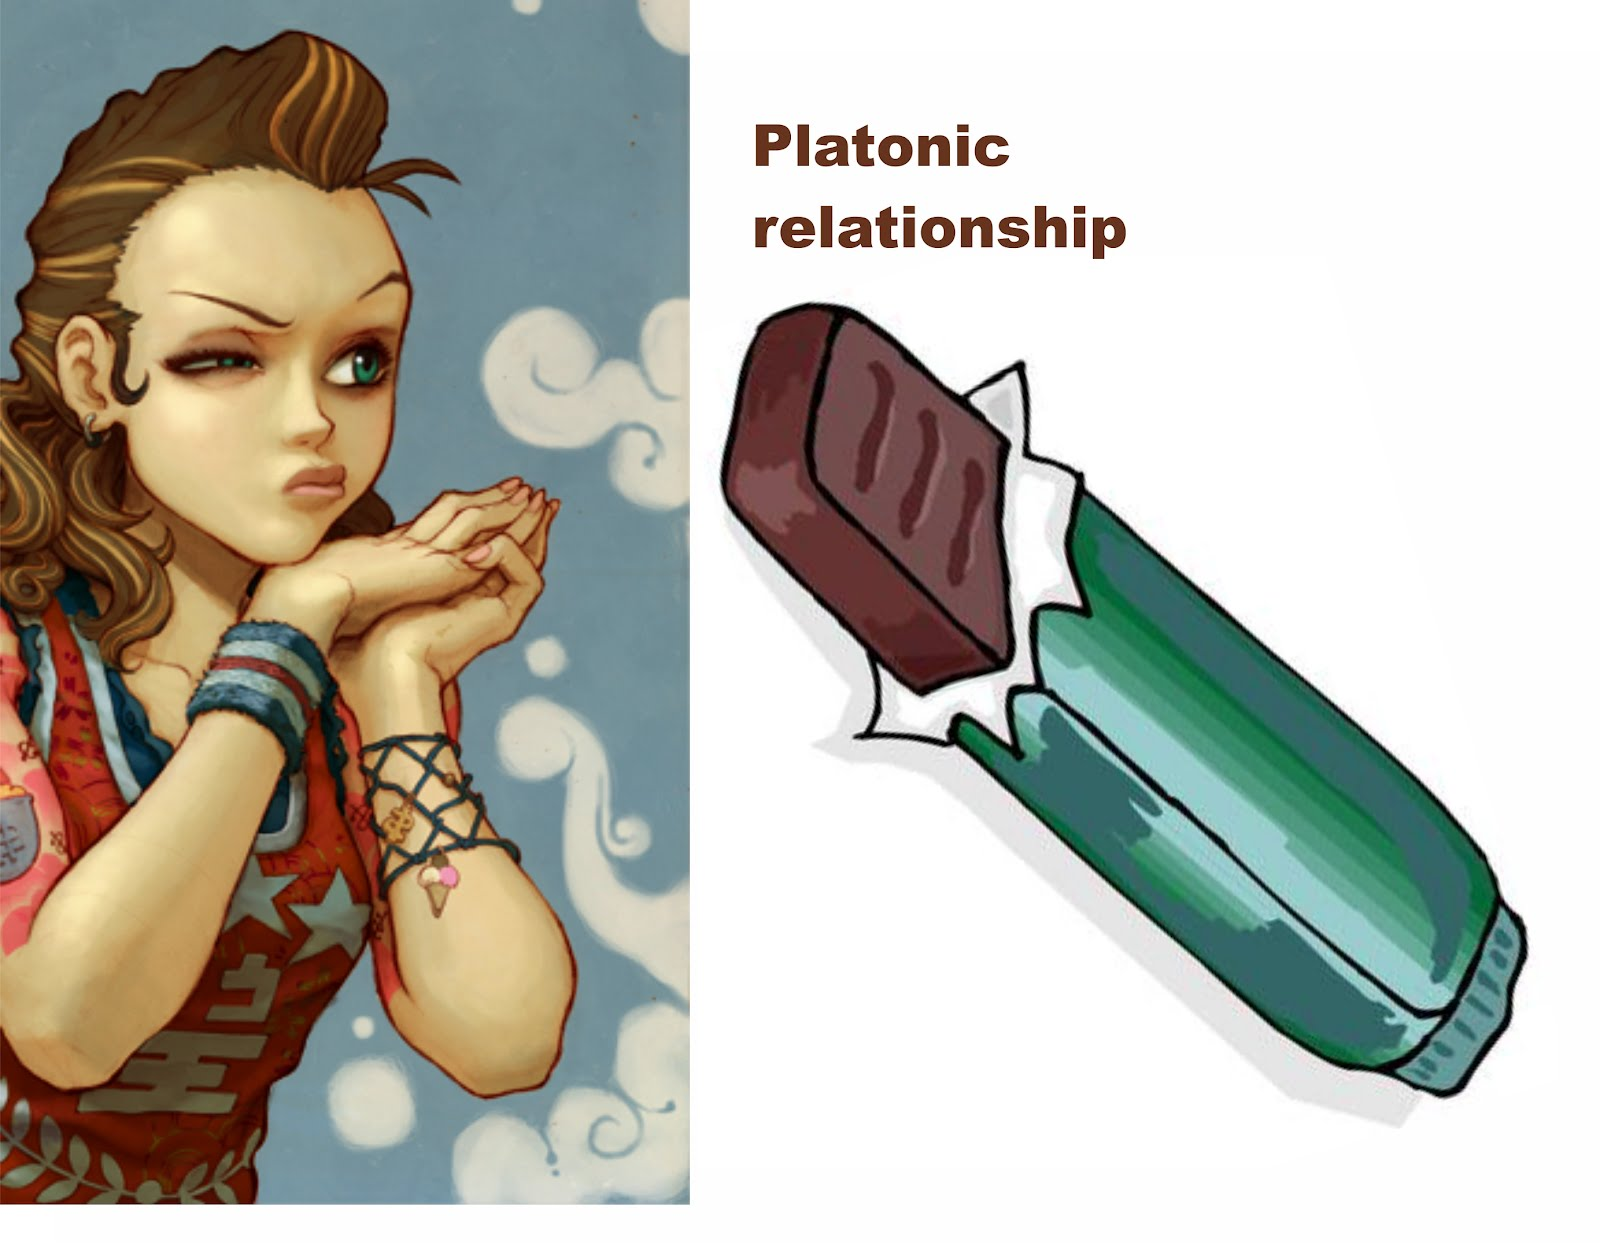 Dating sites for platonic relationships